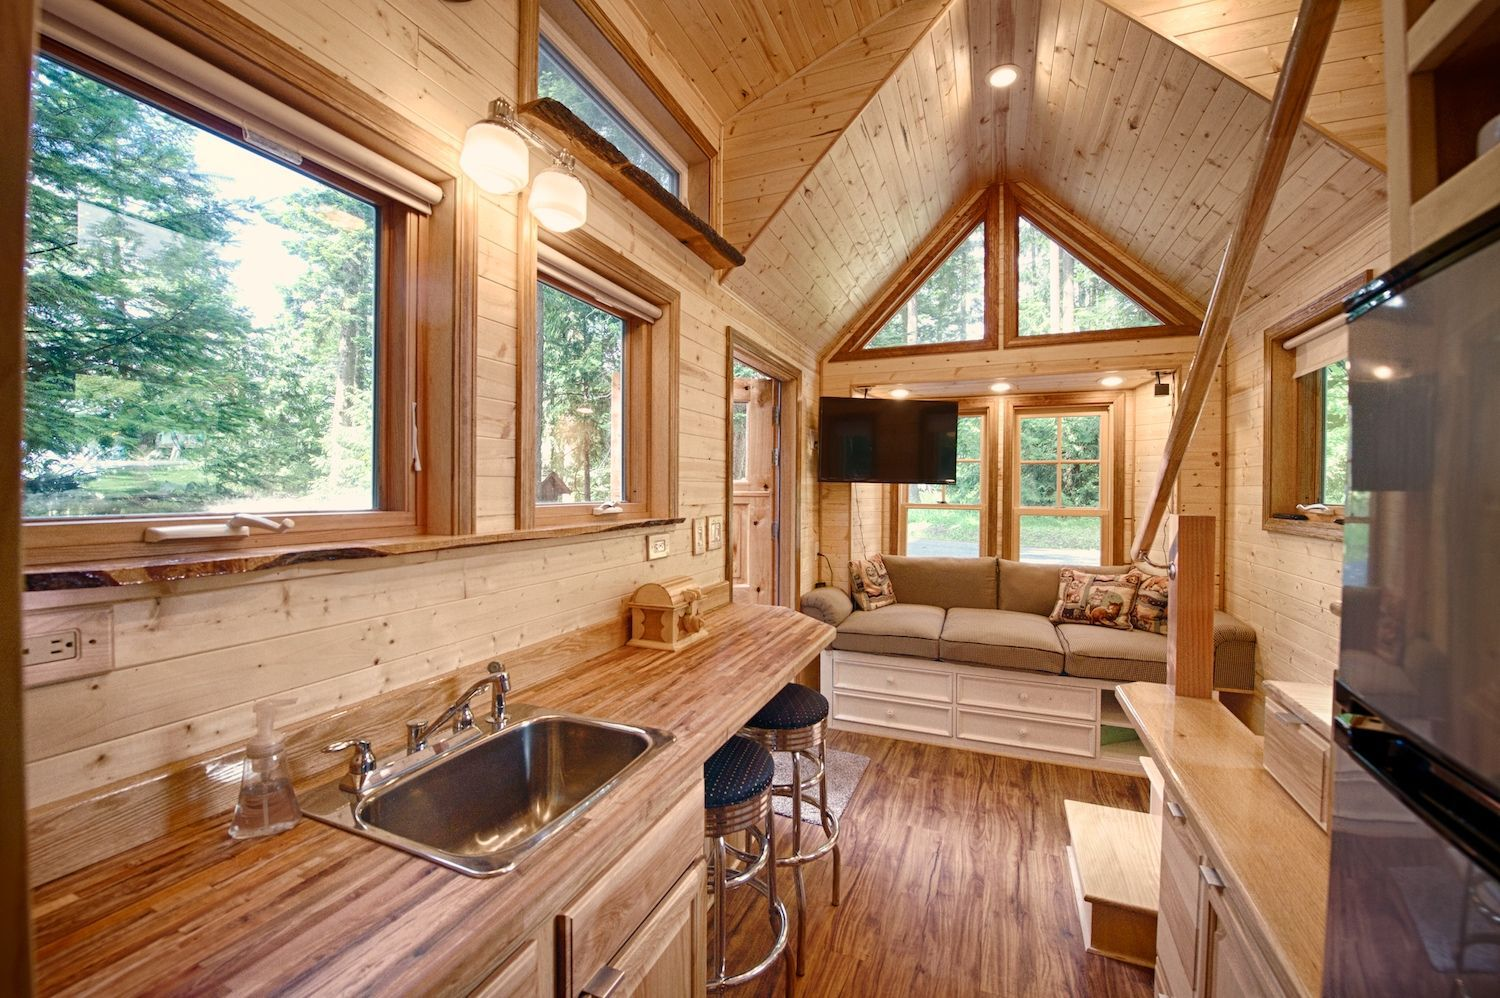 This Tiny Cottage On Wheels Has A Two-person Sauna Inside